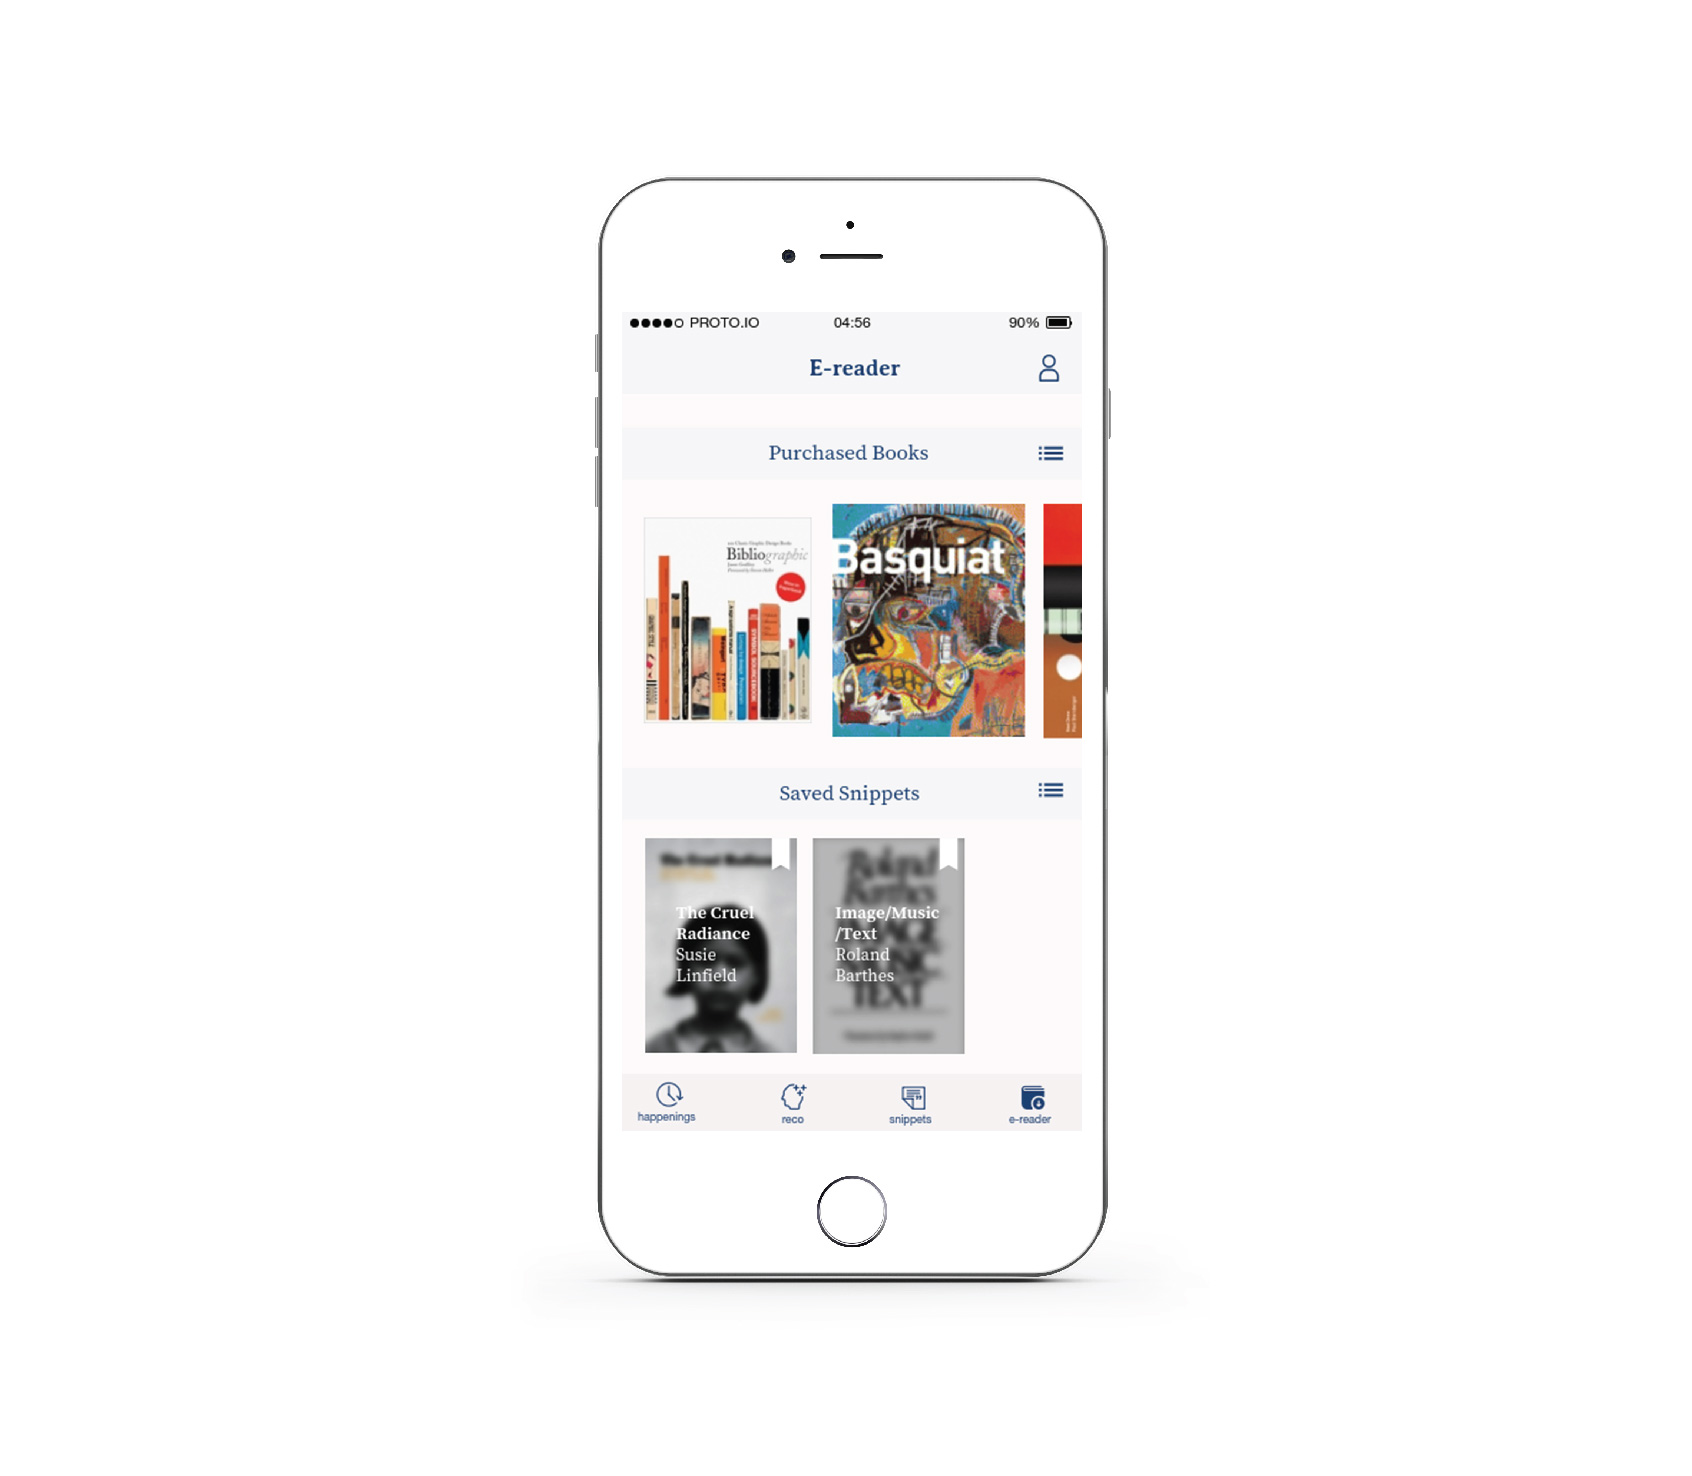 E-reader - E-reader is an essential part of the app because users can buy the books and connect them with the app. They read their favorite books through the app.